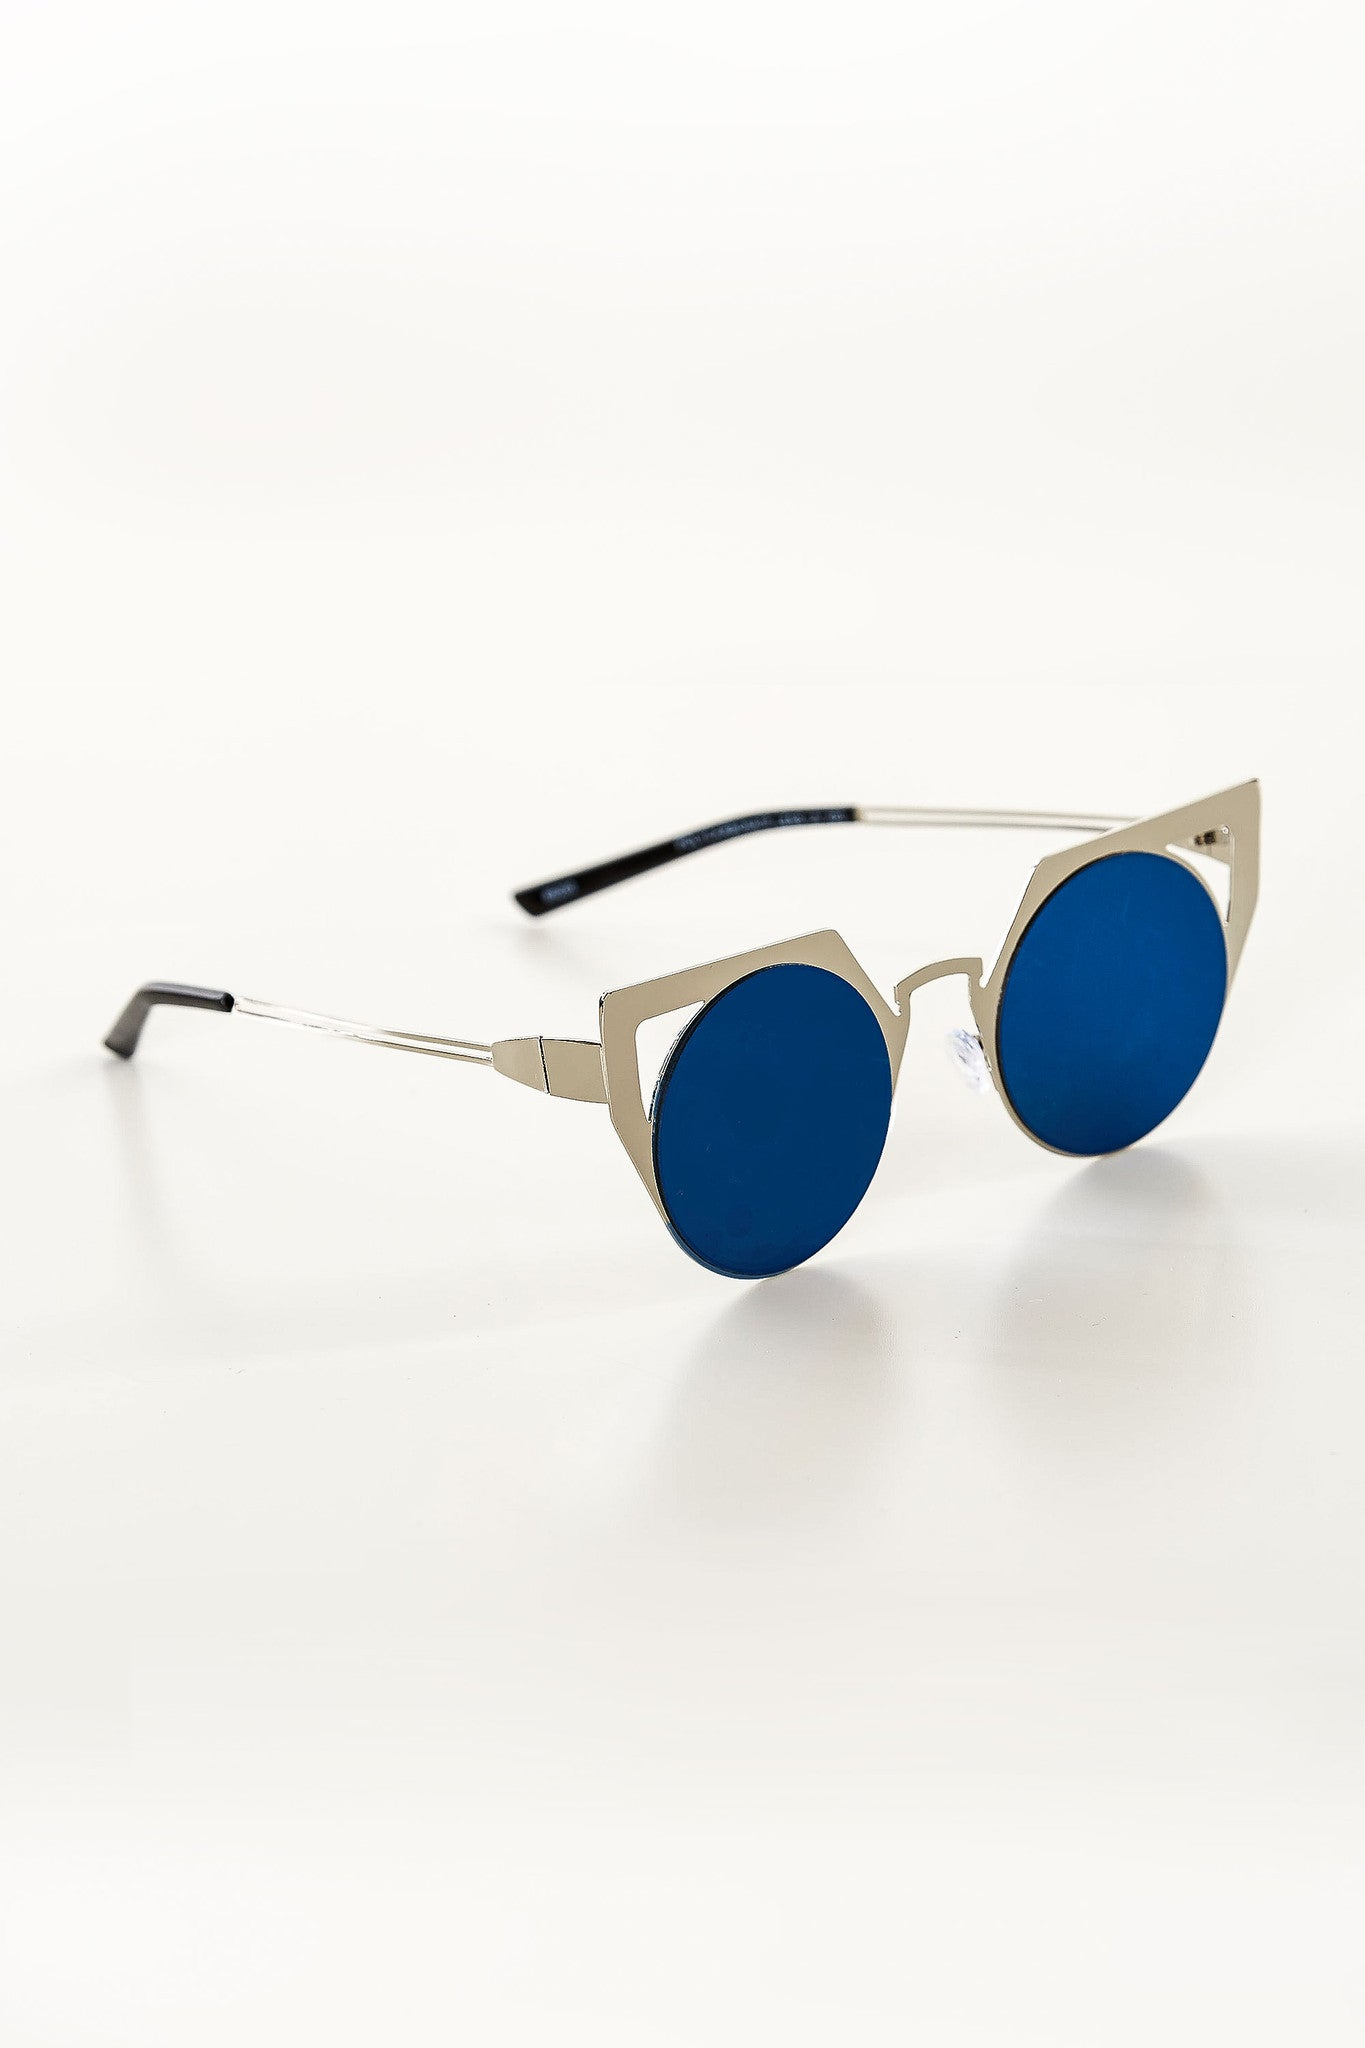 Geometric frames with cat eye design. Round tinted lenses with slight mirror finish.